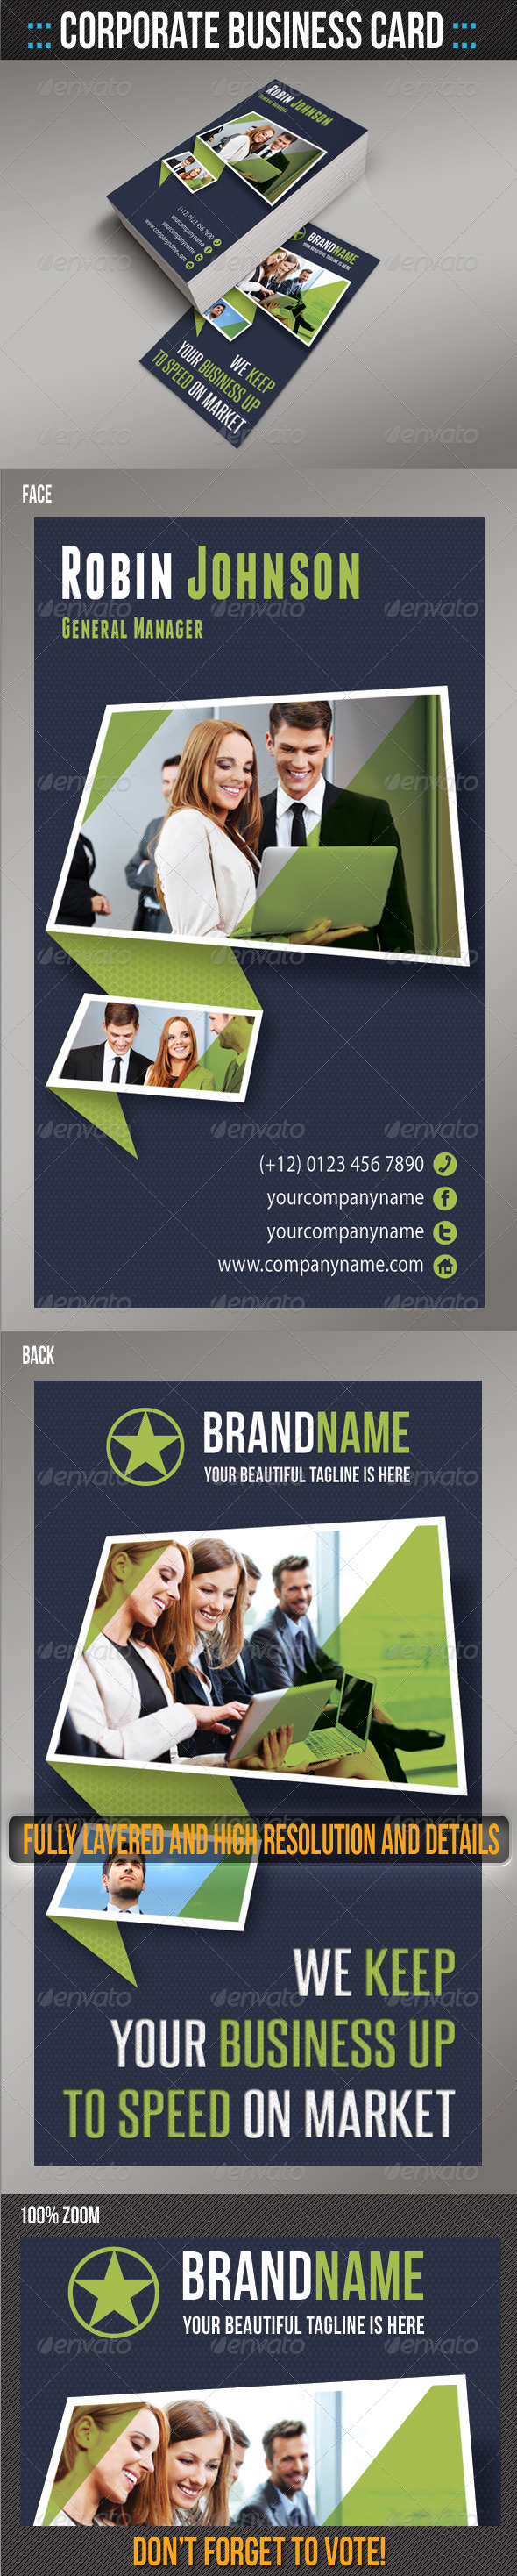 Corporate Business Card 05